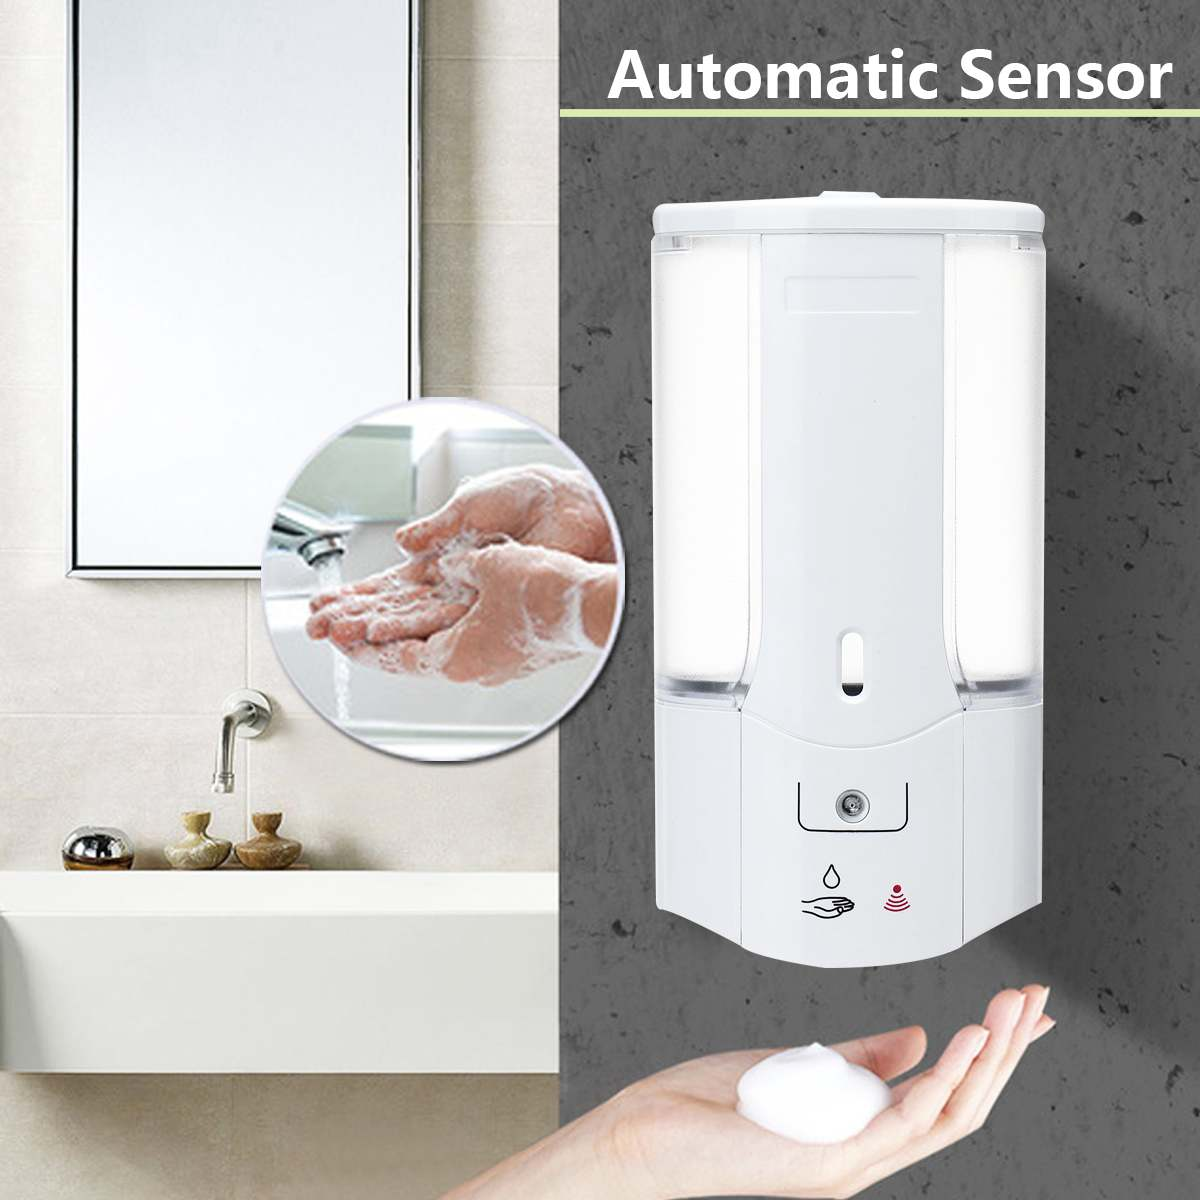 500mL Liquid Soap Dispensers Automatic Sensor Hand-Free Soap Dispenser Shampoo Bathroom Wall Mounted Dispenser With Cover